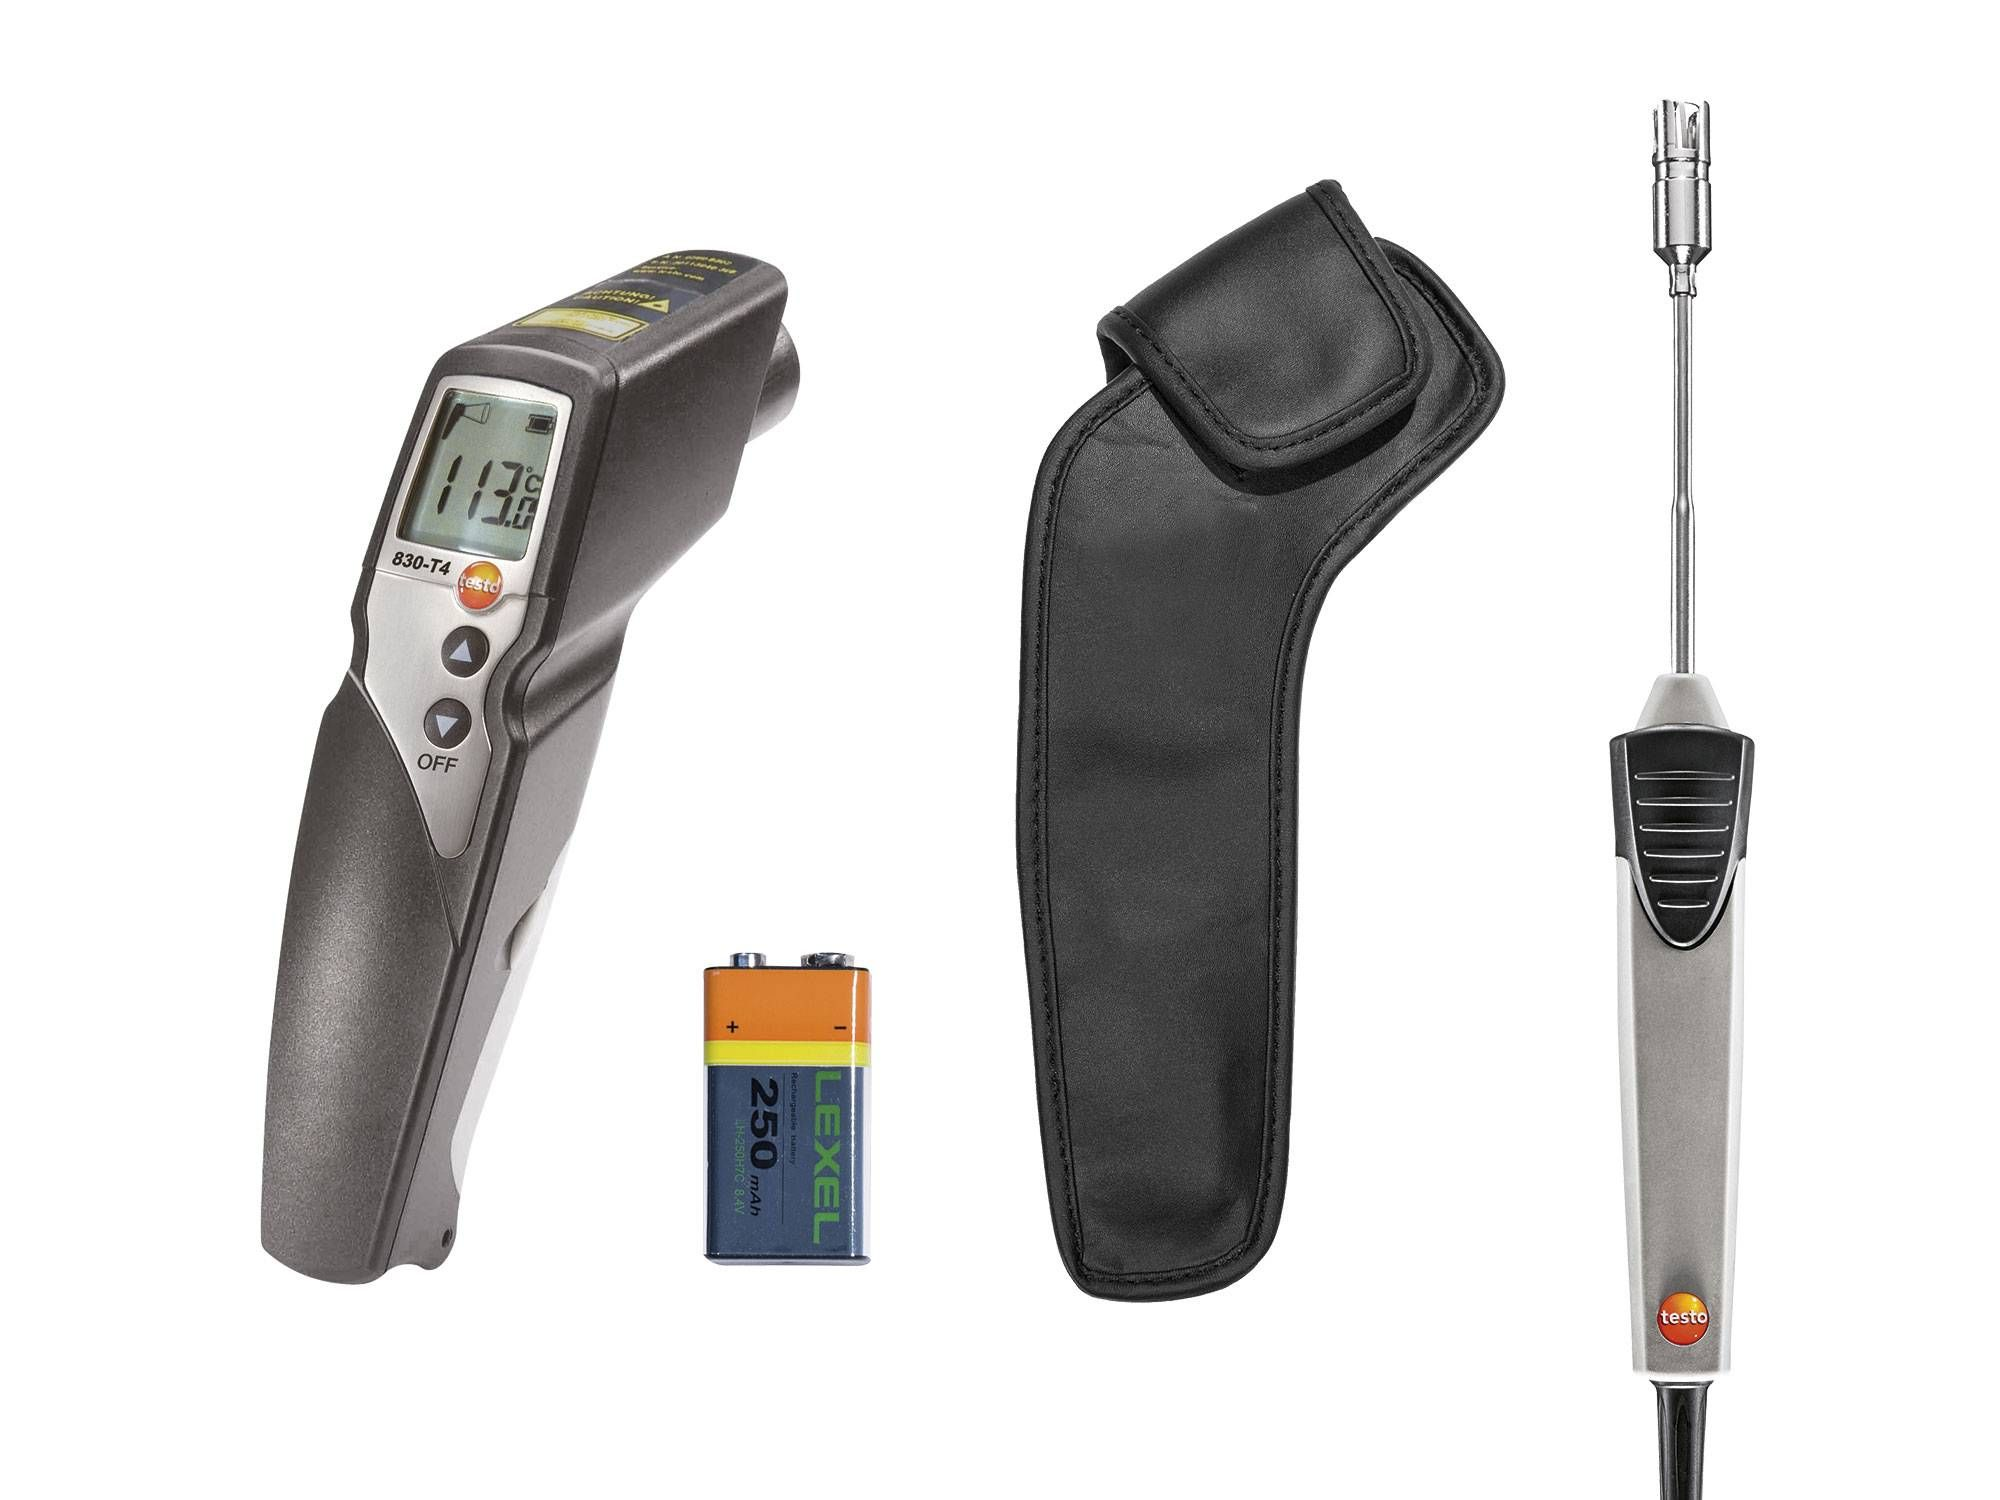 Set testo 830-T4 - Infrared thermometer